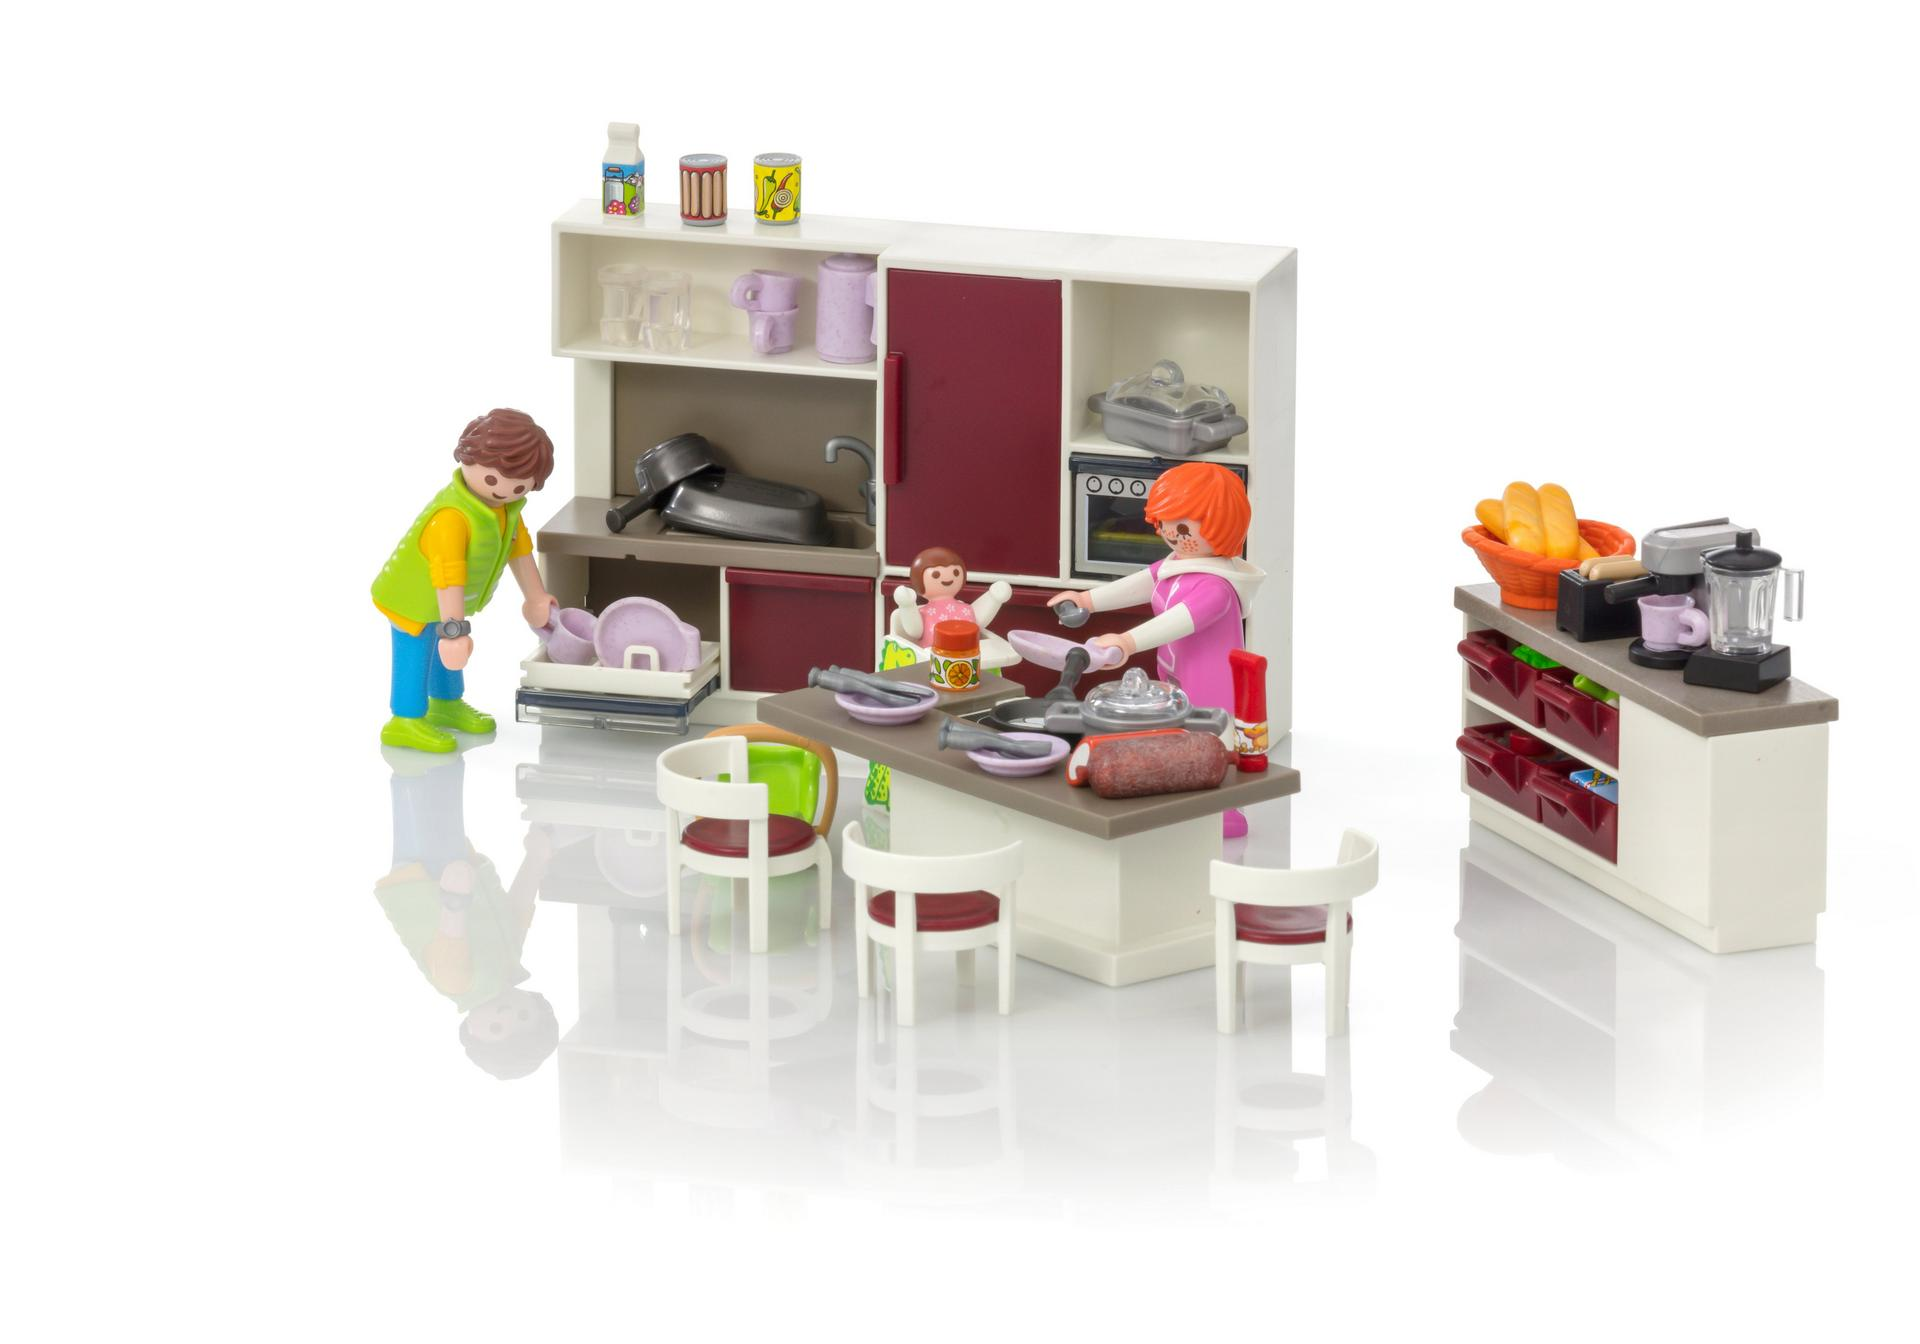 Kitchen - 9269 - PLAYMOBIL® USA